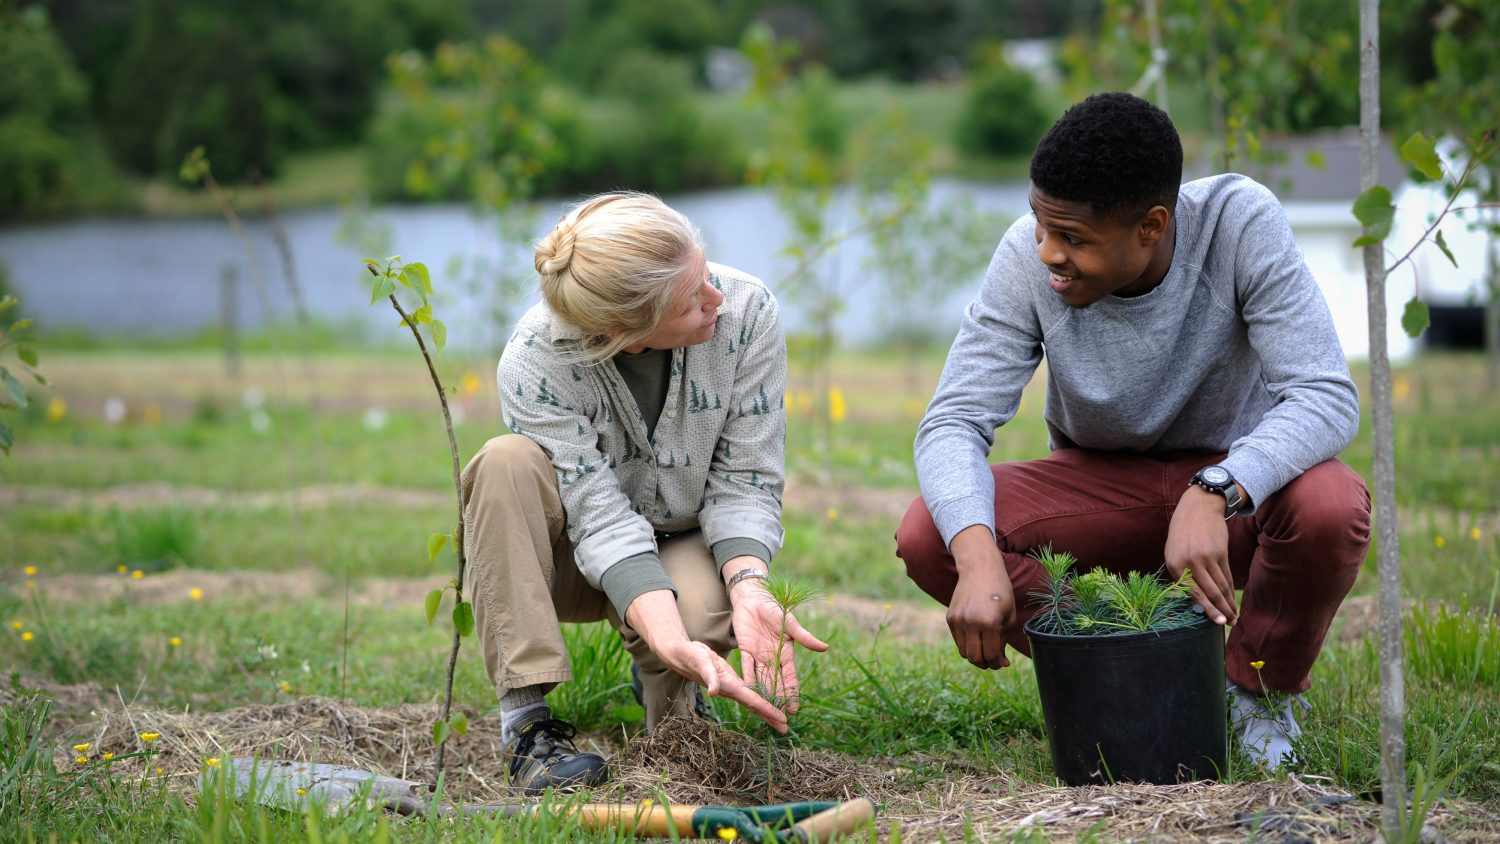 Two people planting a plant in the ground